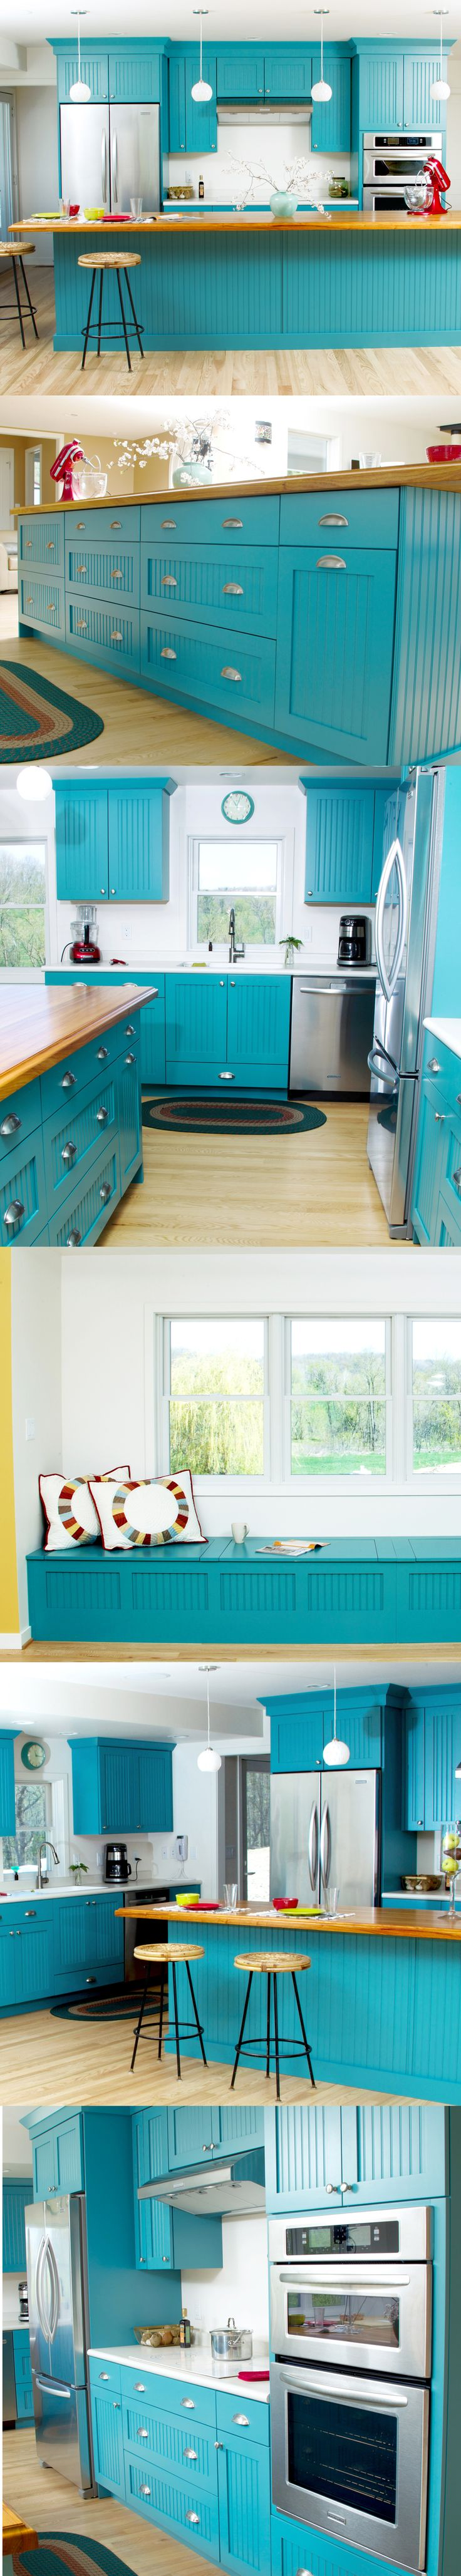 Bright teal transitional cottage styled kitchen featuring red and yellow decor, white and wood countertops, stainless steel and Dura Supreme Cabinetry.